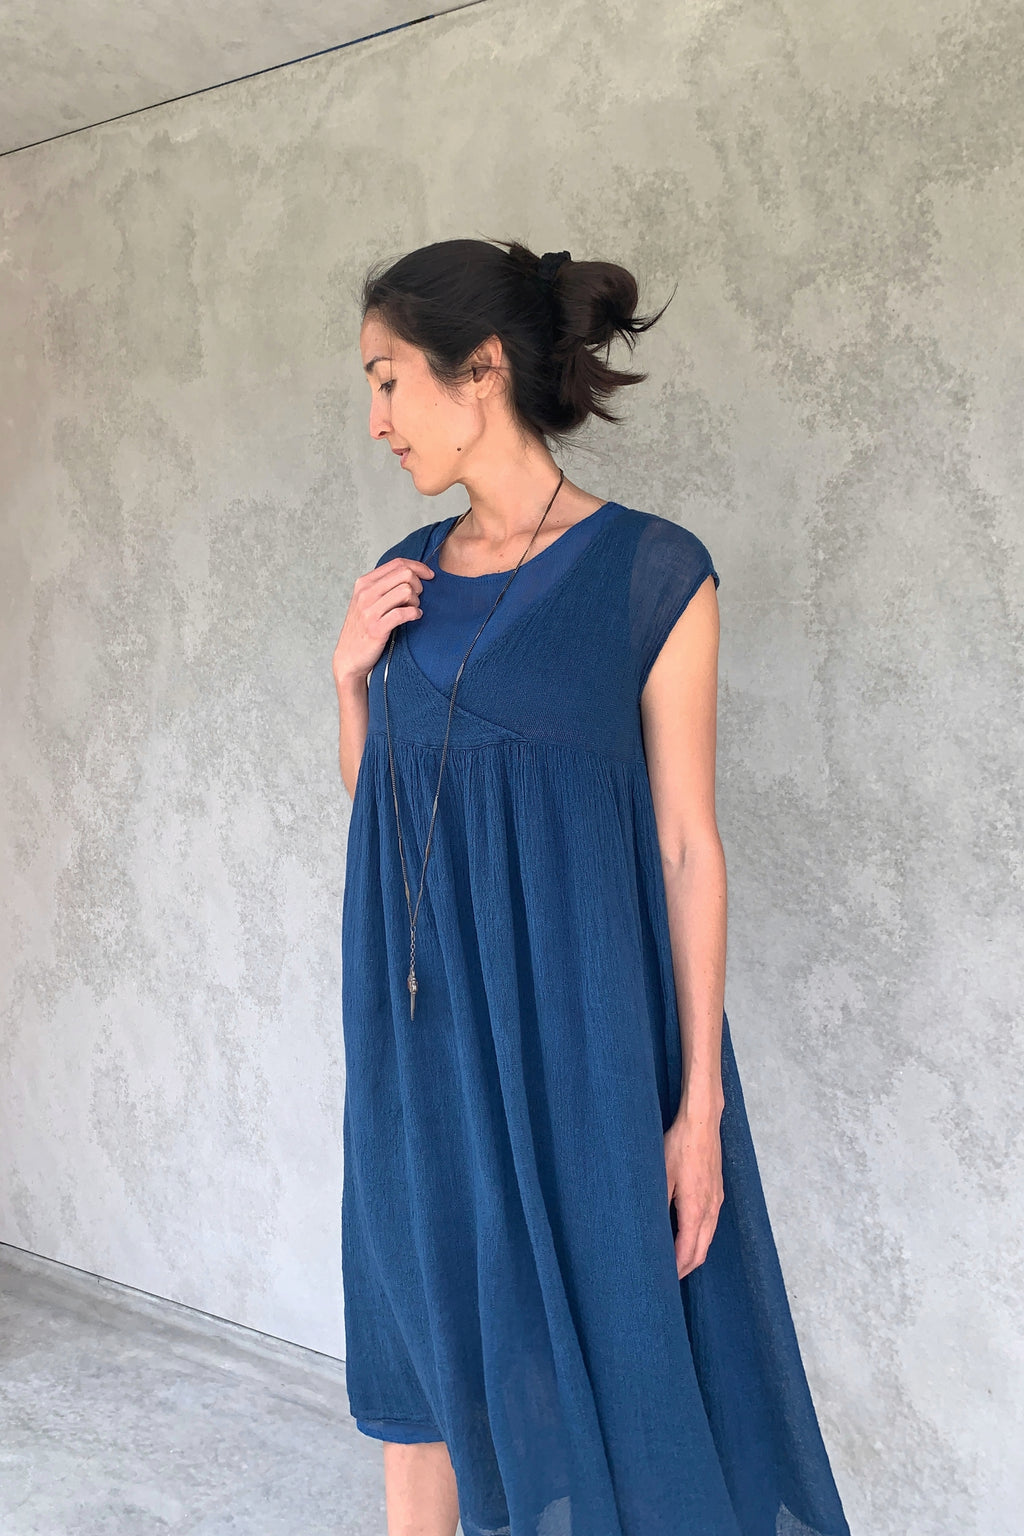 ban inoue : karamiori linen dress in indigo